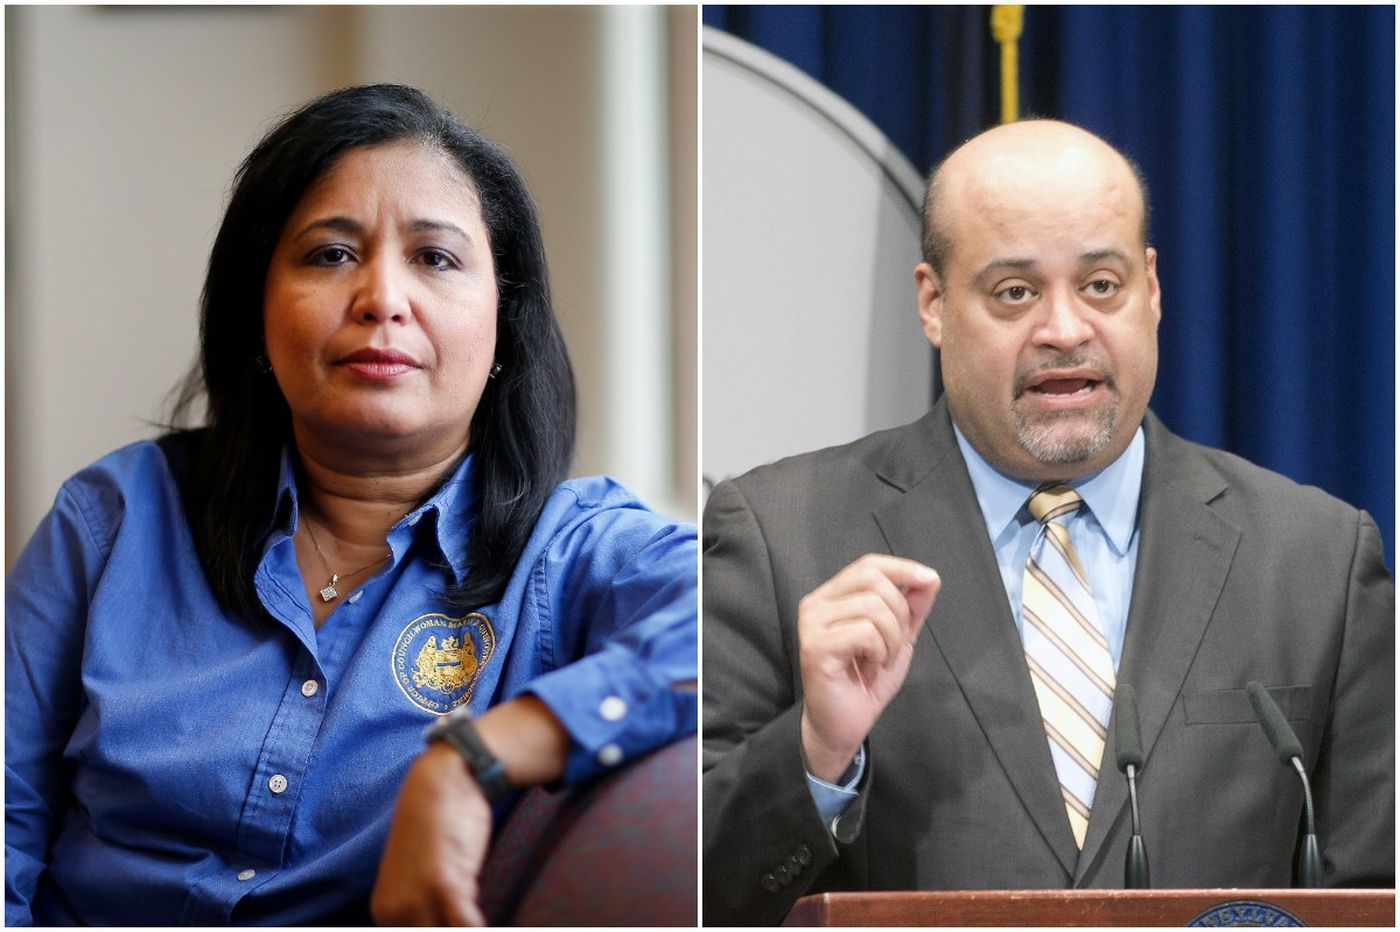 Philadelphia Councilwoman Maria Quiñones-Sánchez asks authorities to prevent fraud by primary opponent